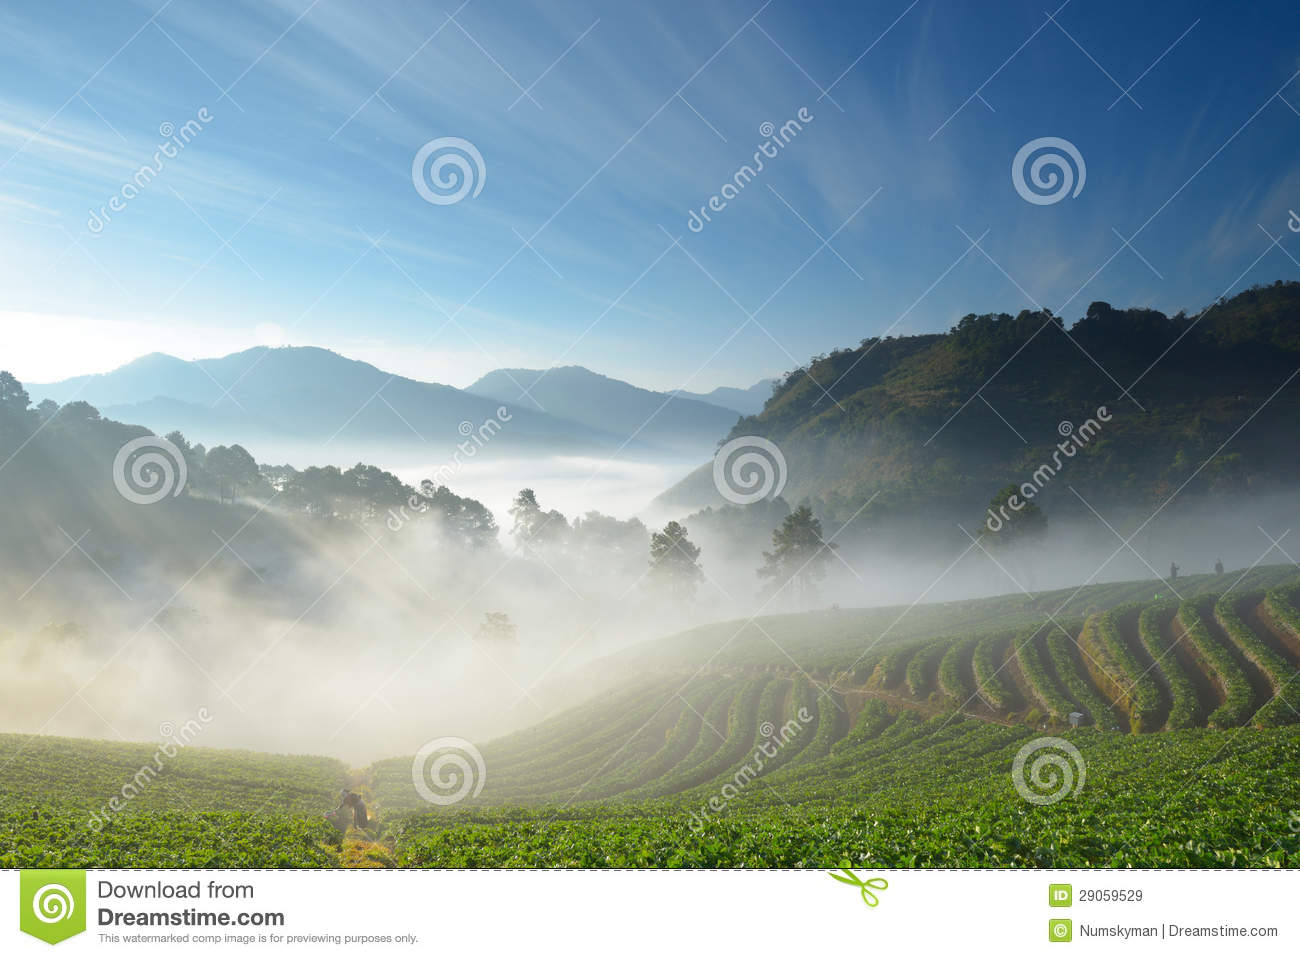 Beautiful strawberry farm and mountaineer among mountain and fog